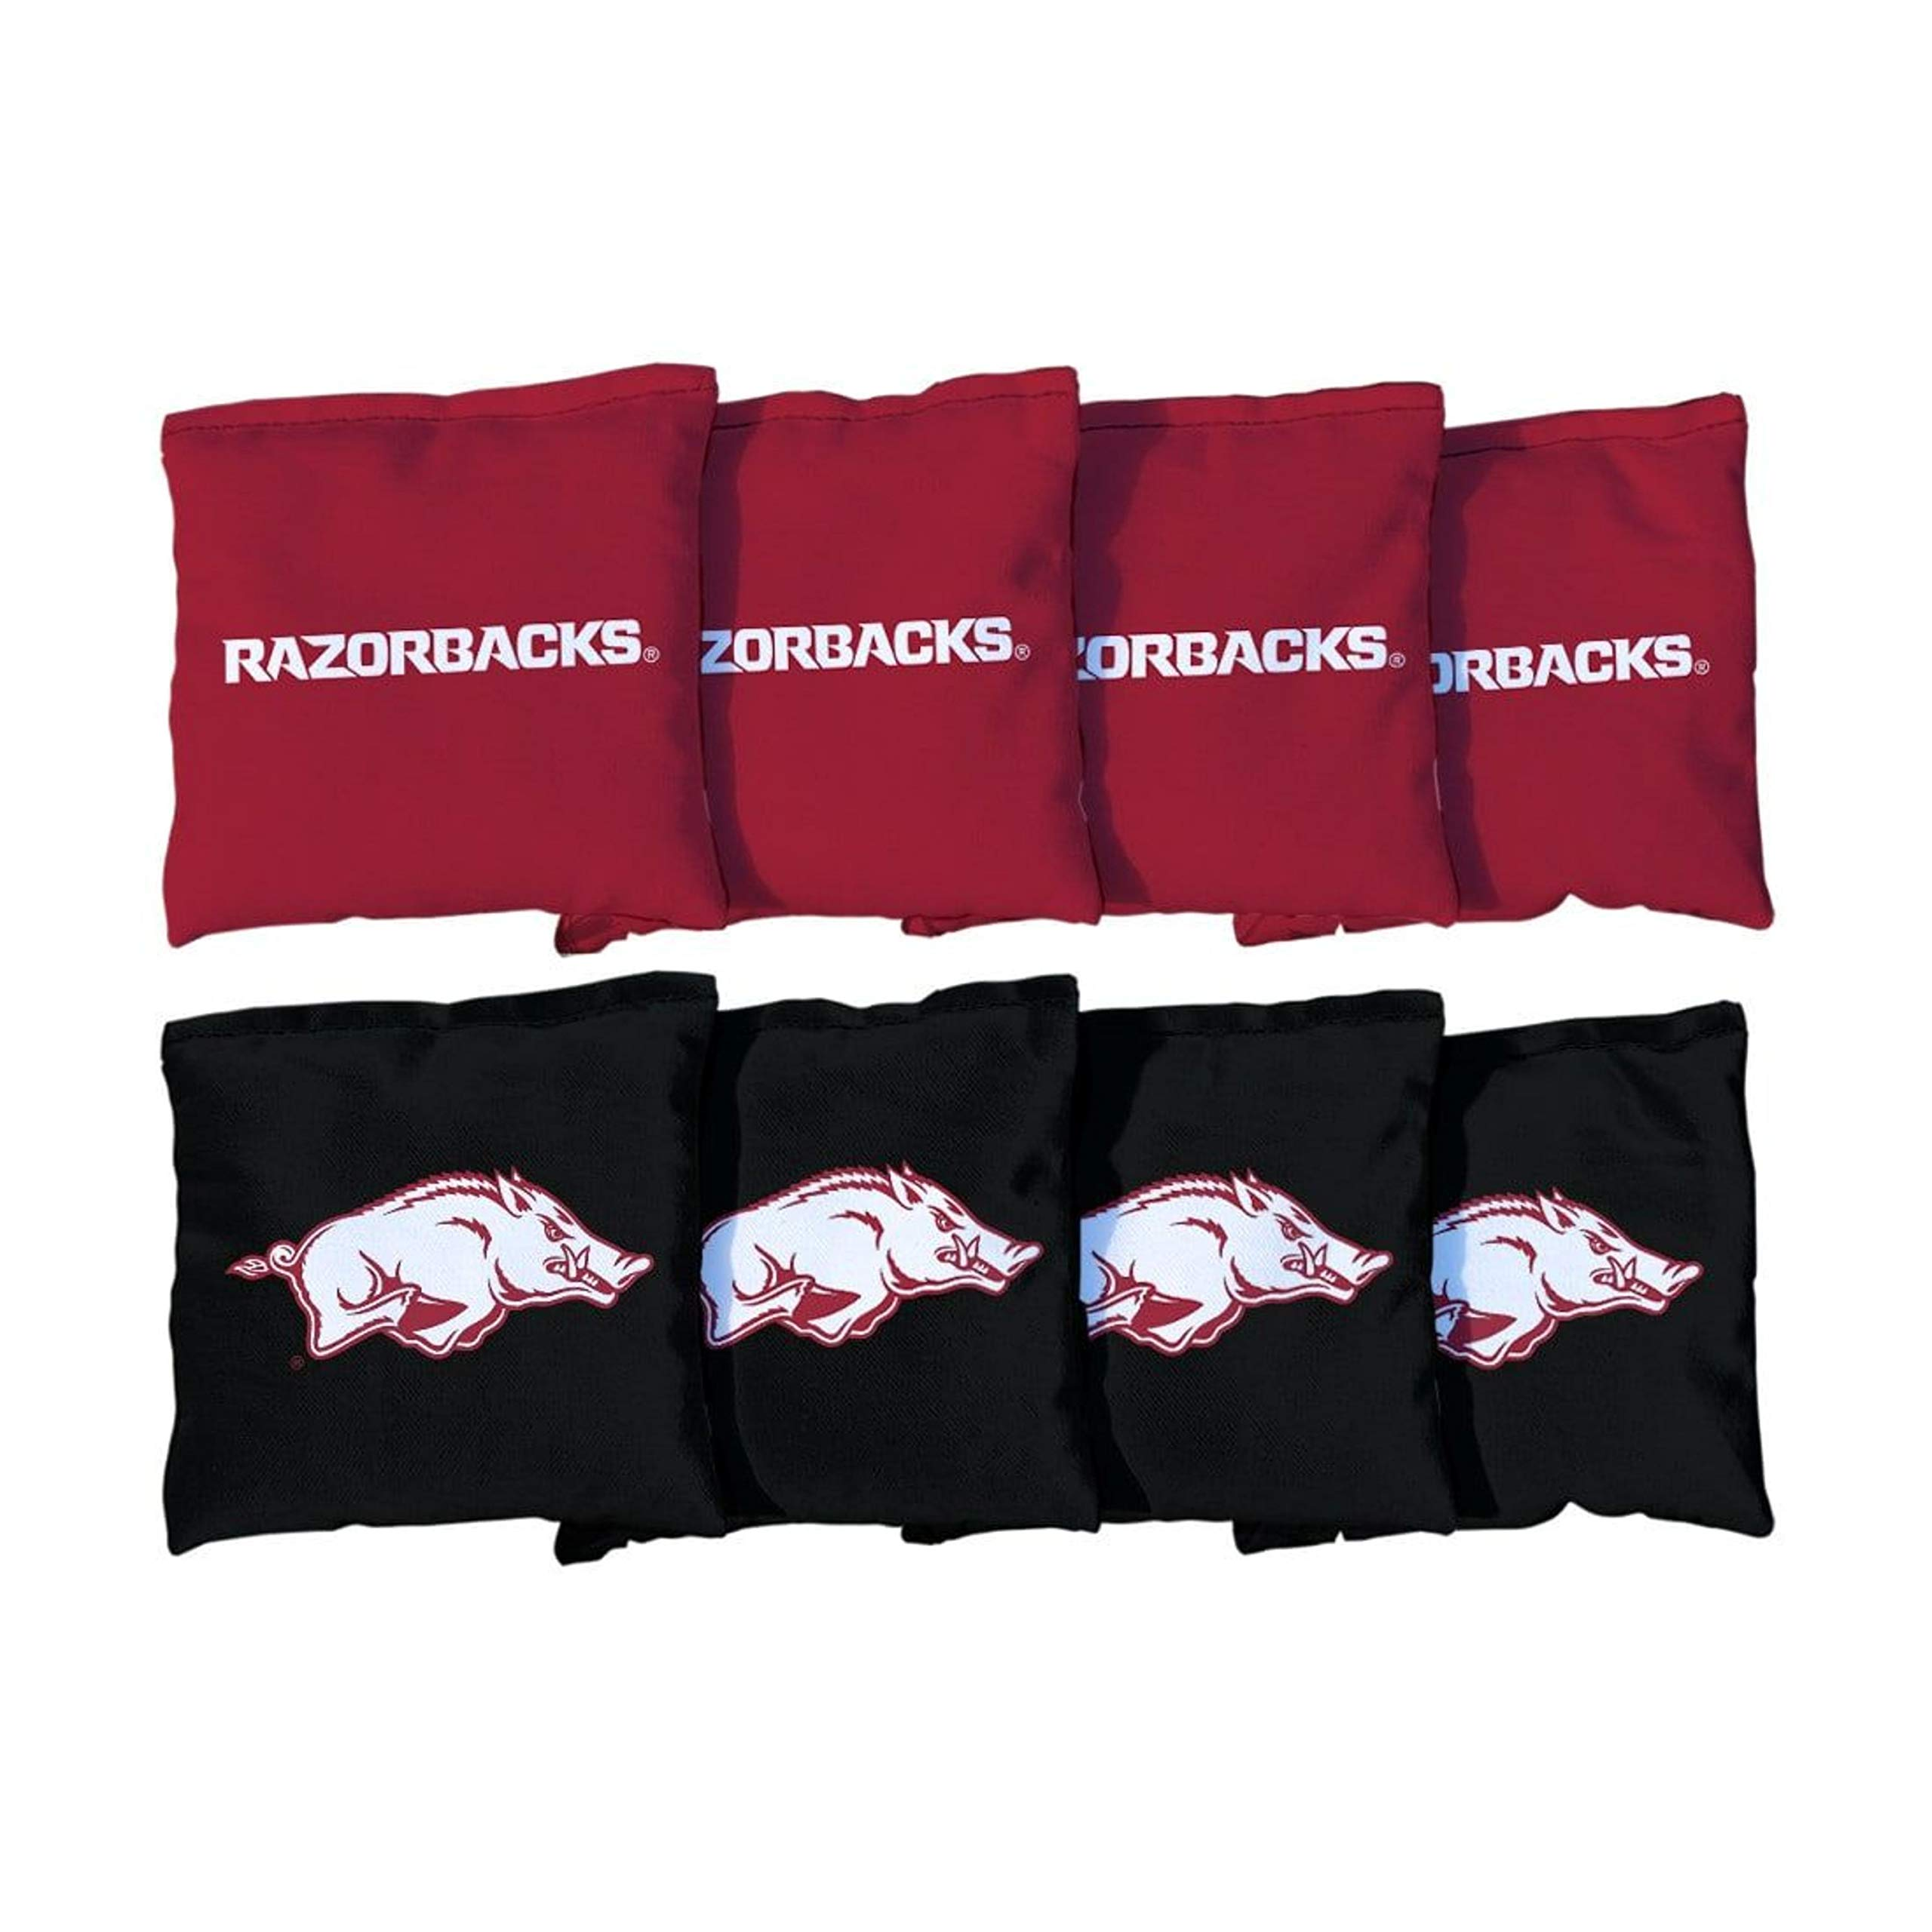 Victory Tailgate NCAA Collegiate Regulation Cornhole Game Bag Set (8 Bags Included, Corn-Filled) - Arkansas Razorbacks by Victory Tailgate